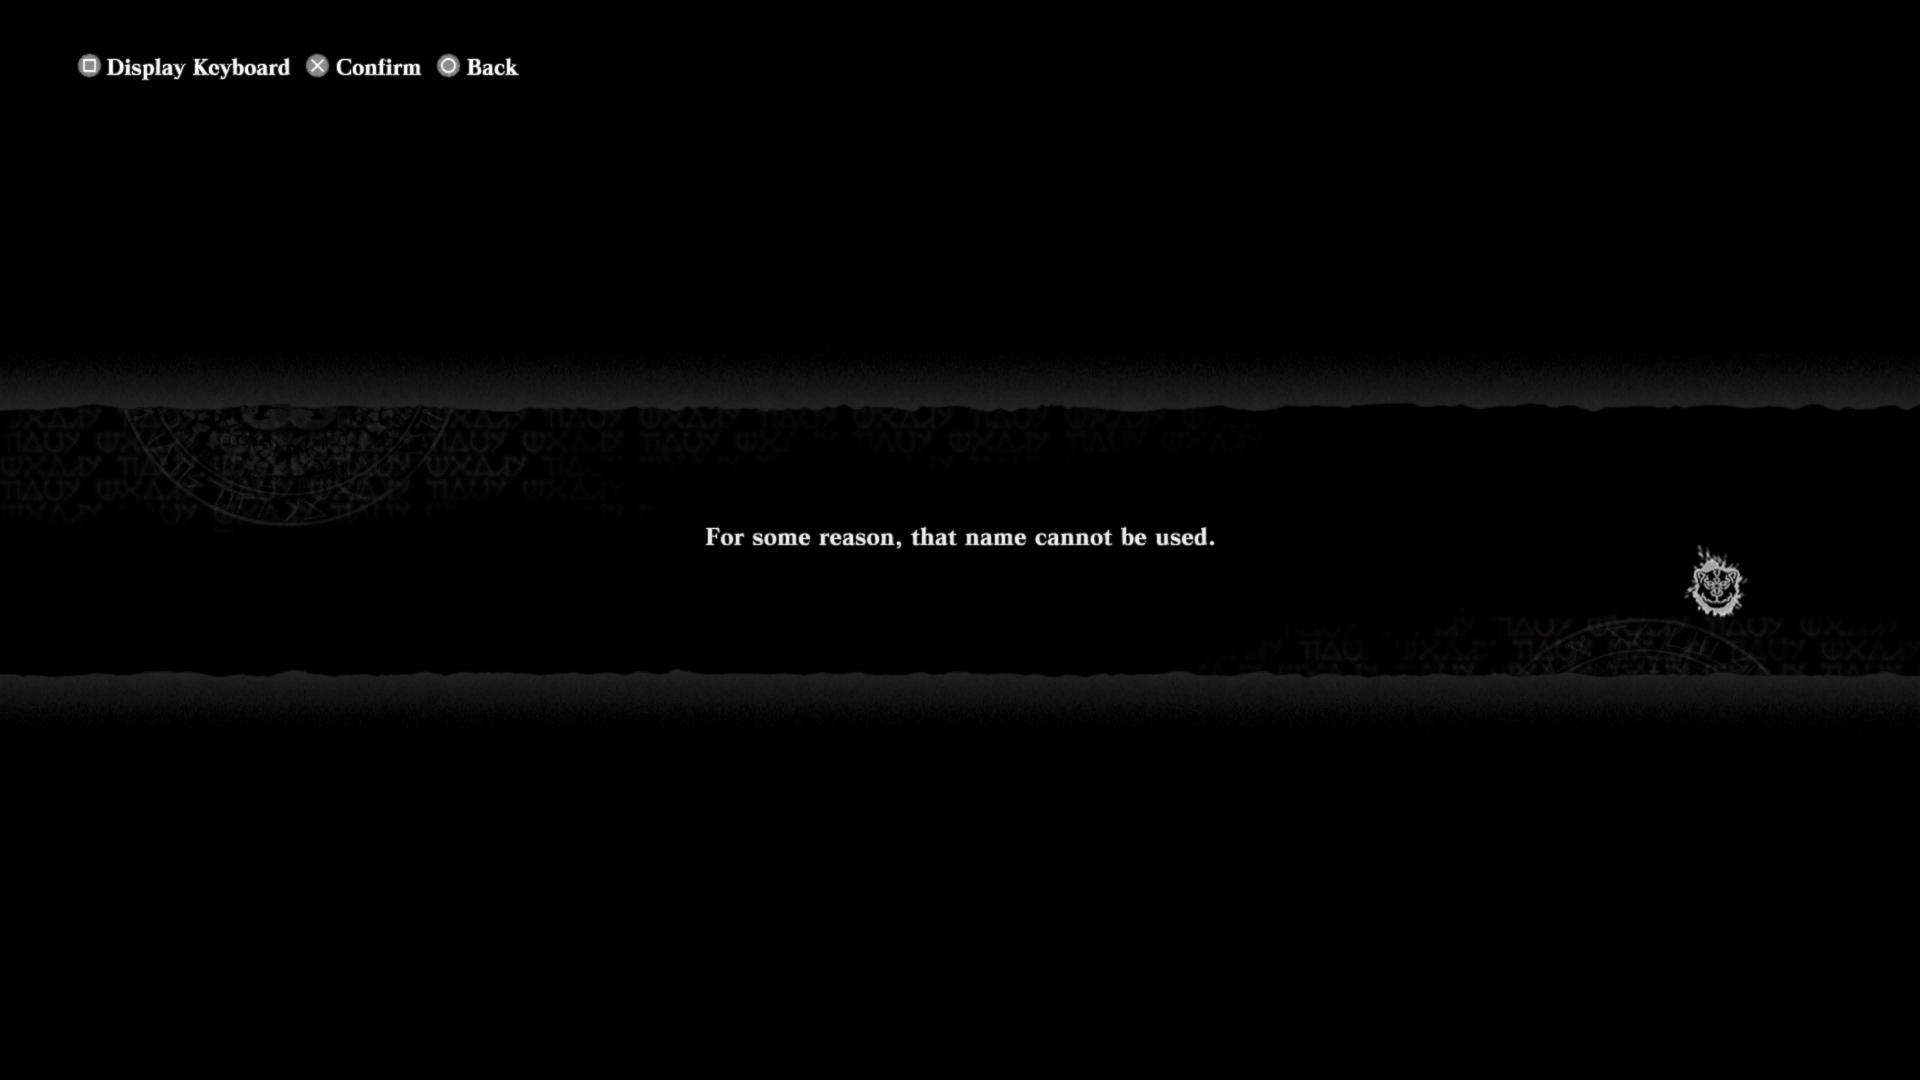 """The NieR Replicant file creation screen, saying in white text on black, """"For some reason, that name cannot be used."""""""